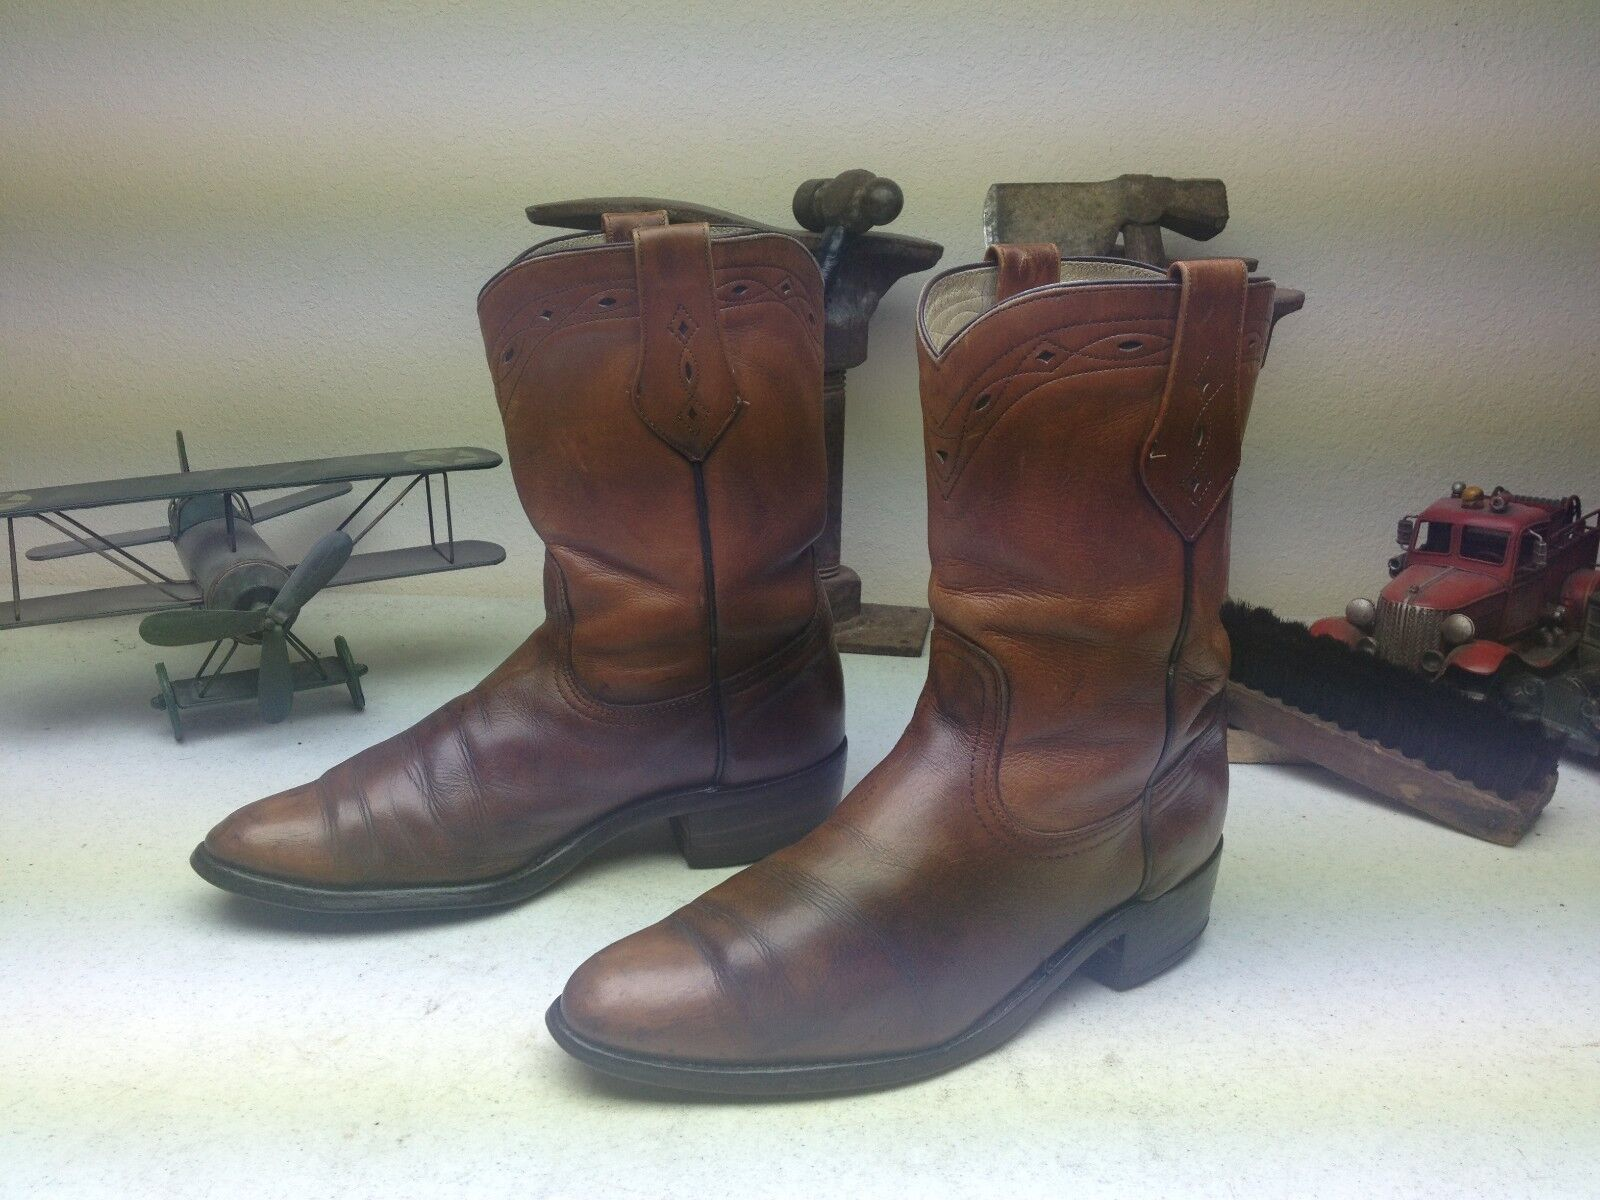 VINTAGE MADE IN USA FRYE BROWN LEATHER WESTERN ENGINEER COWBOY BOOTS SIZE 10 D